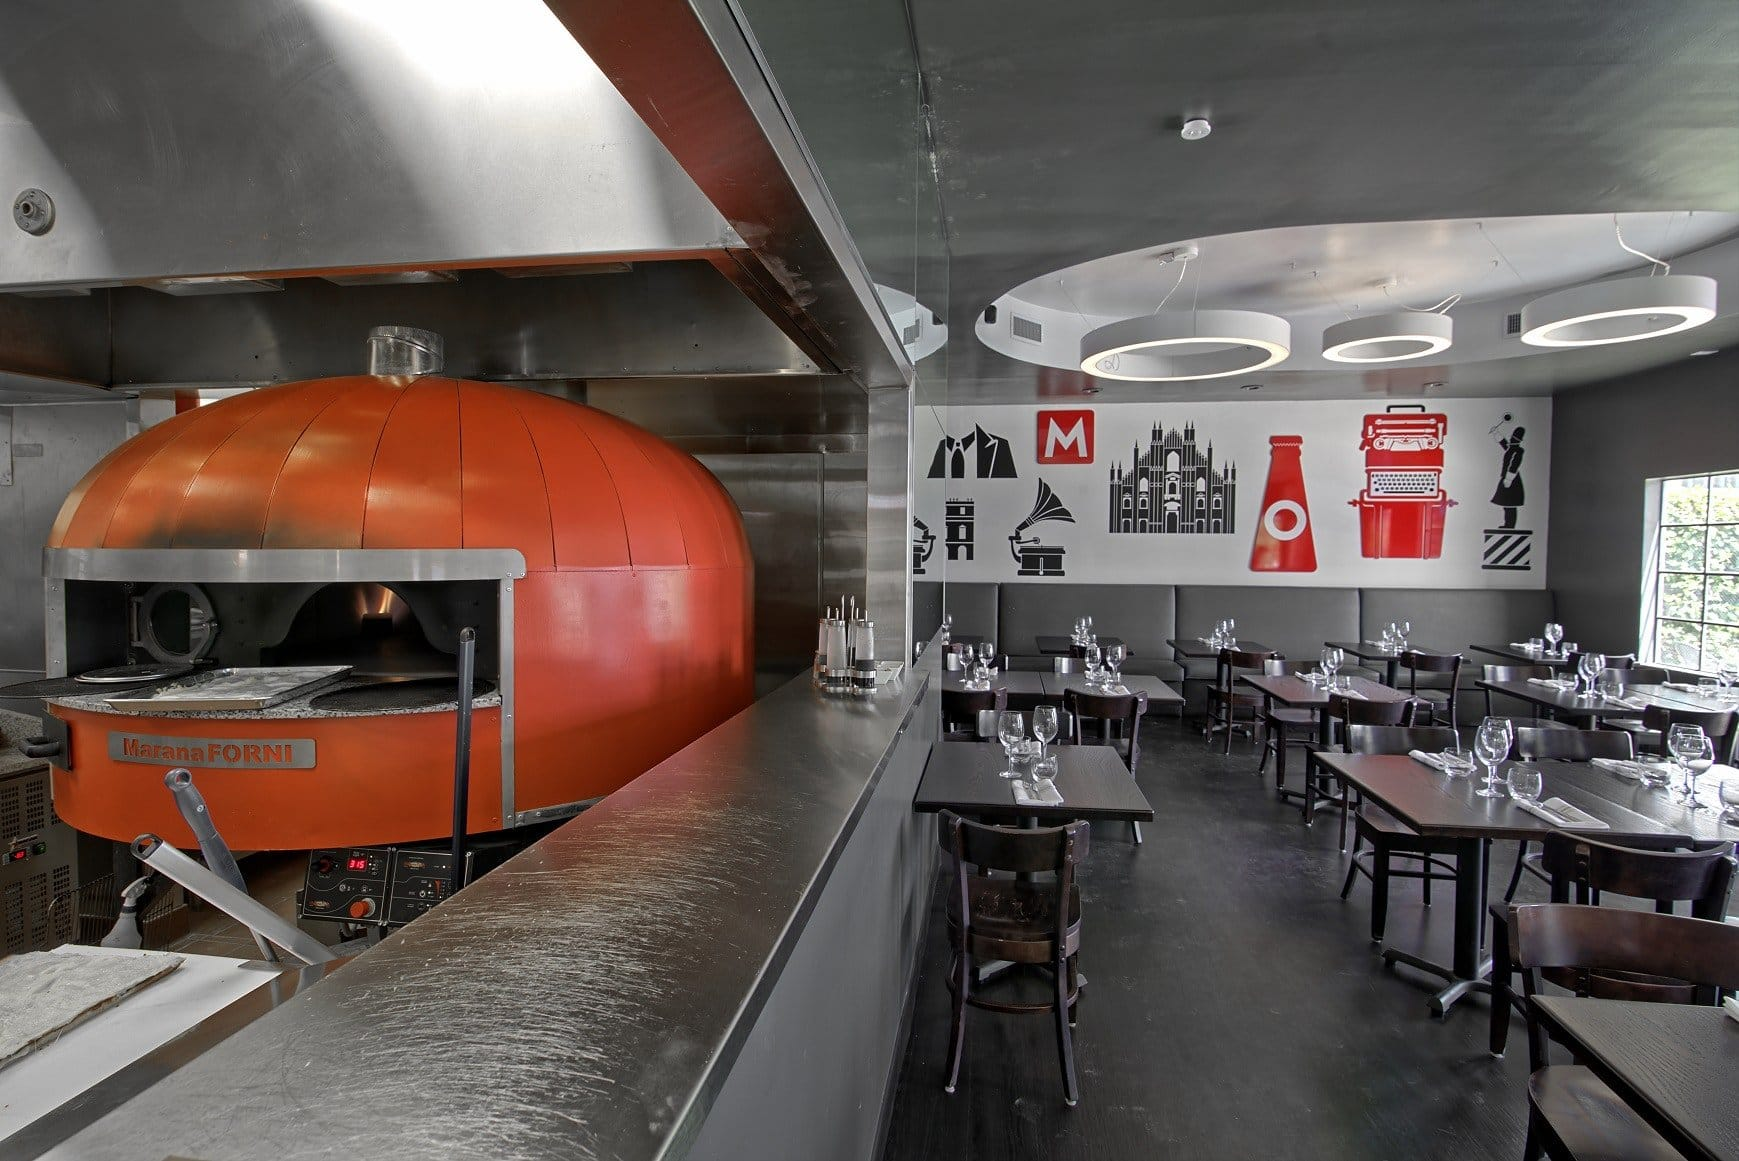 The Ambrogio15 pizza oven in the Pacific Beach restaurant